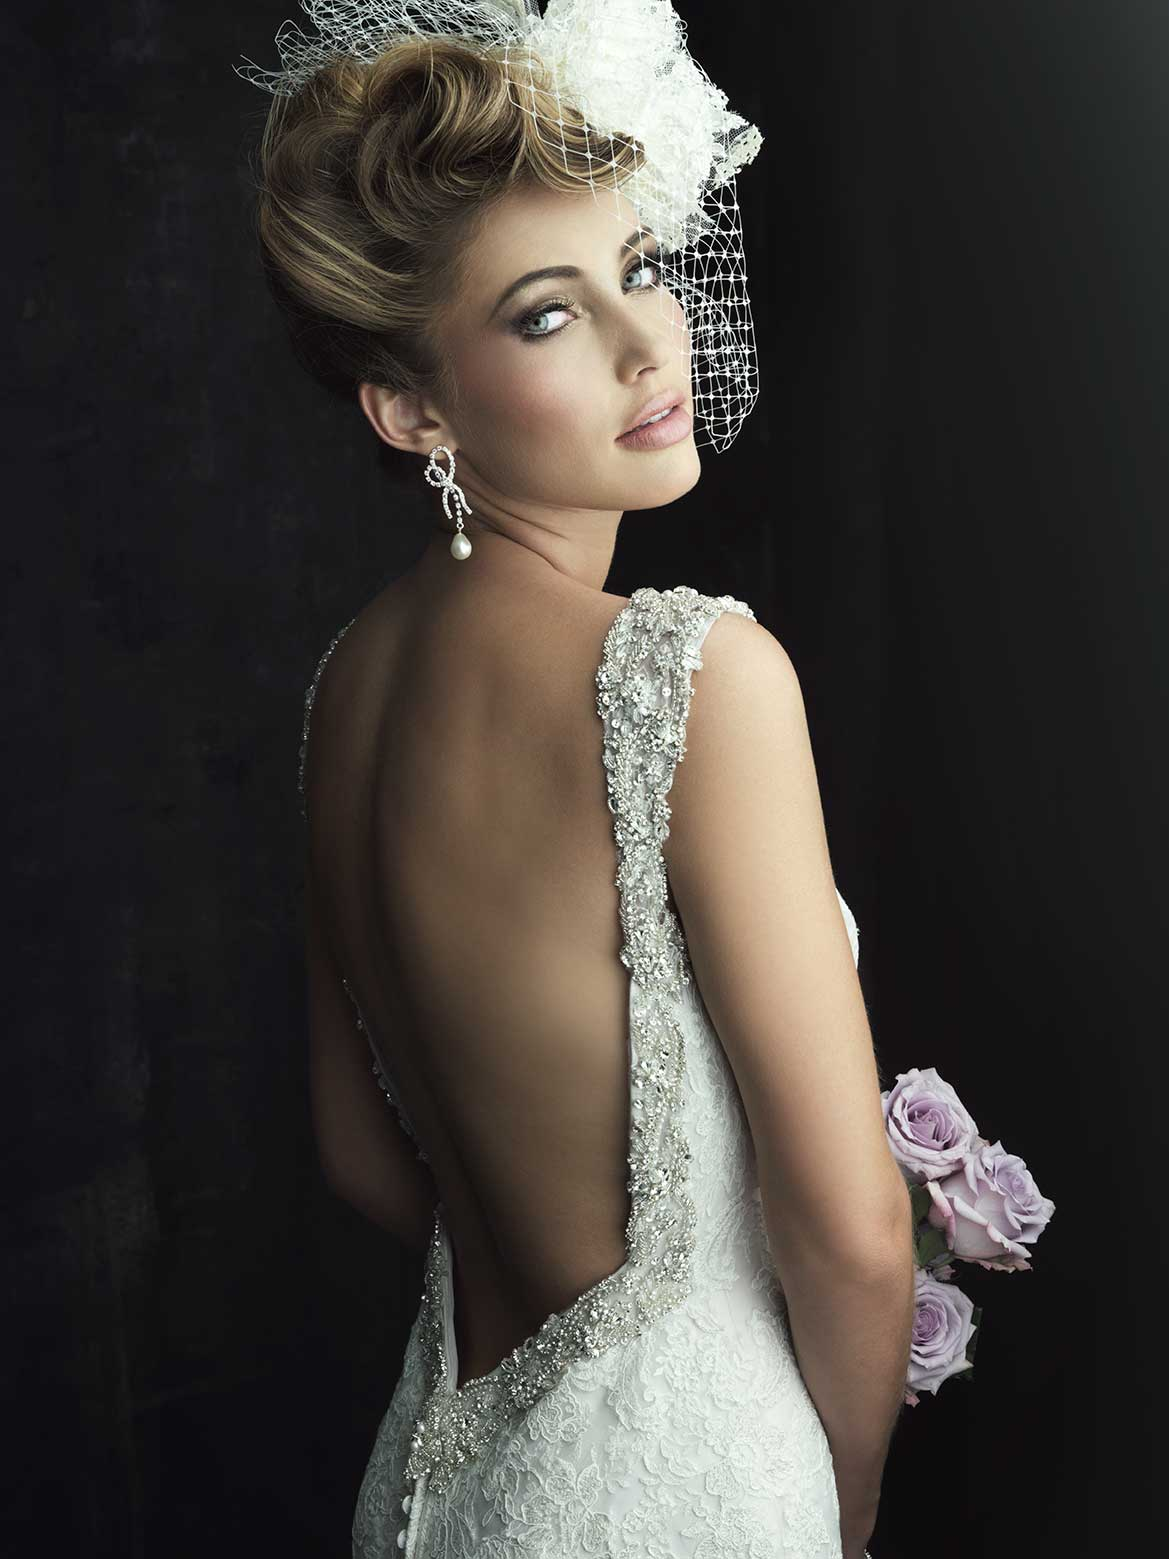 allure couture c low back wedding dresses Allure Couture C posted 3 years ago in Wedding Dress